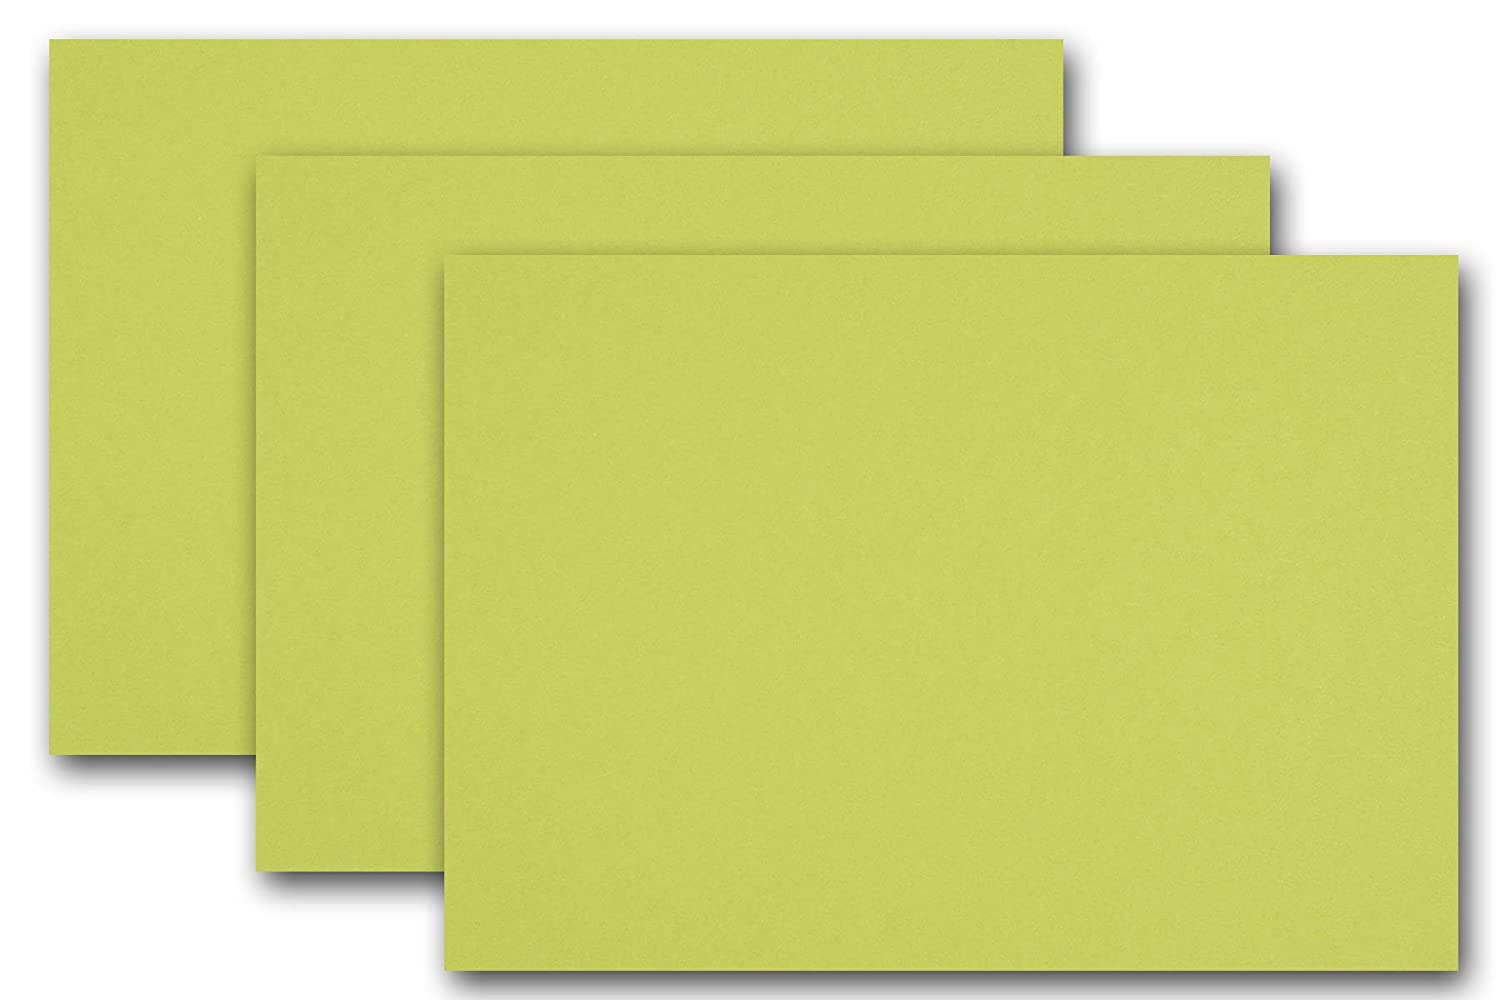 Premium Colored Blank 5x7 Card Stock (50, Black Licorice) CutCardStock 4336867720